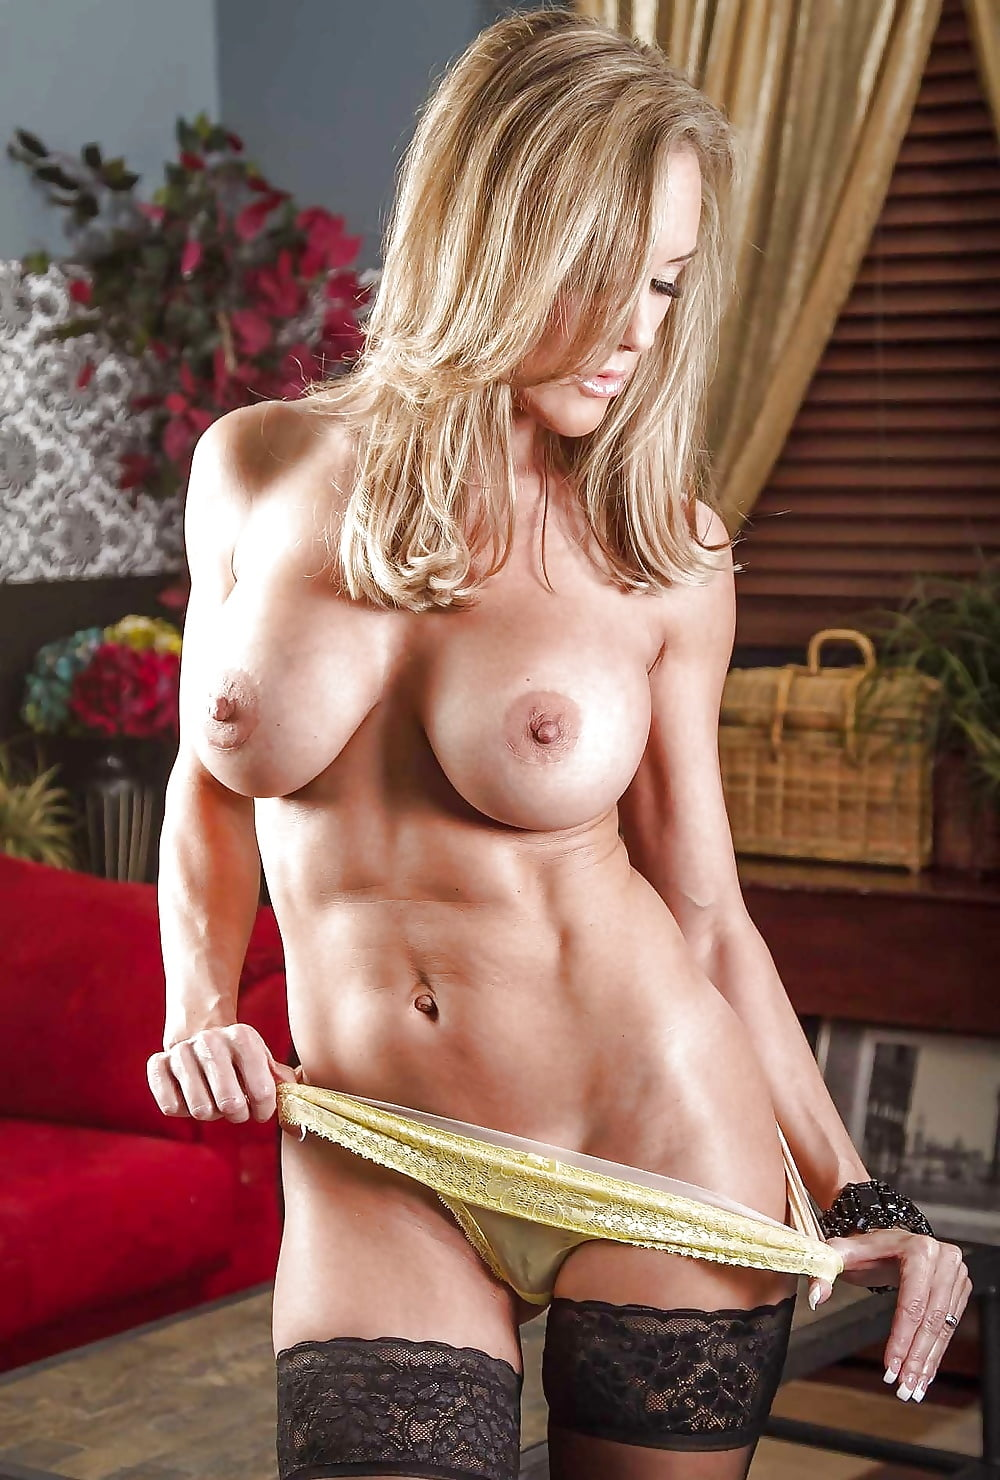 Brandi Love Escort Service Houston, La, Ny Vgs